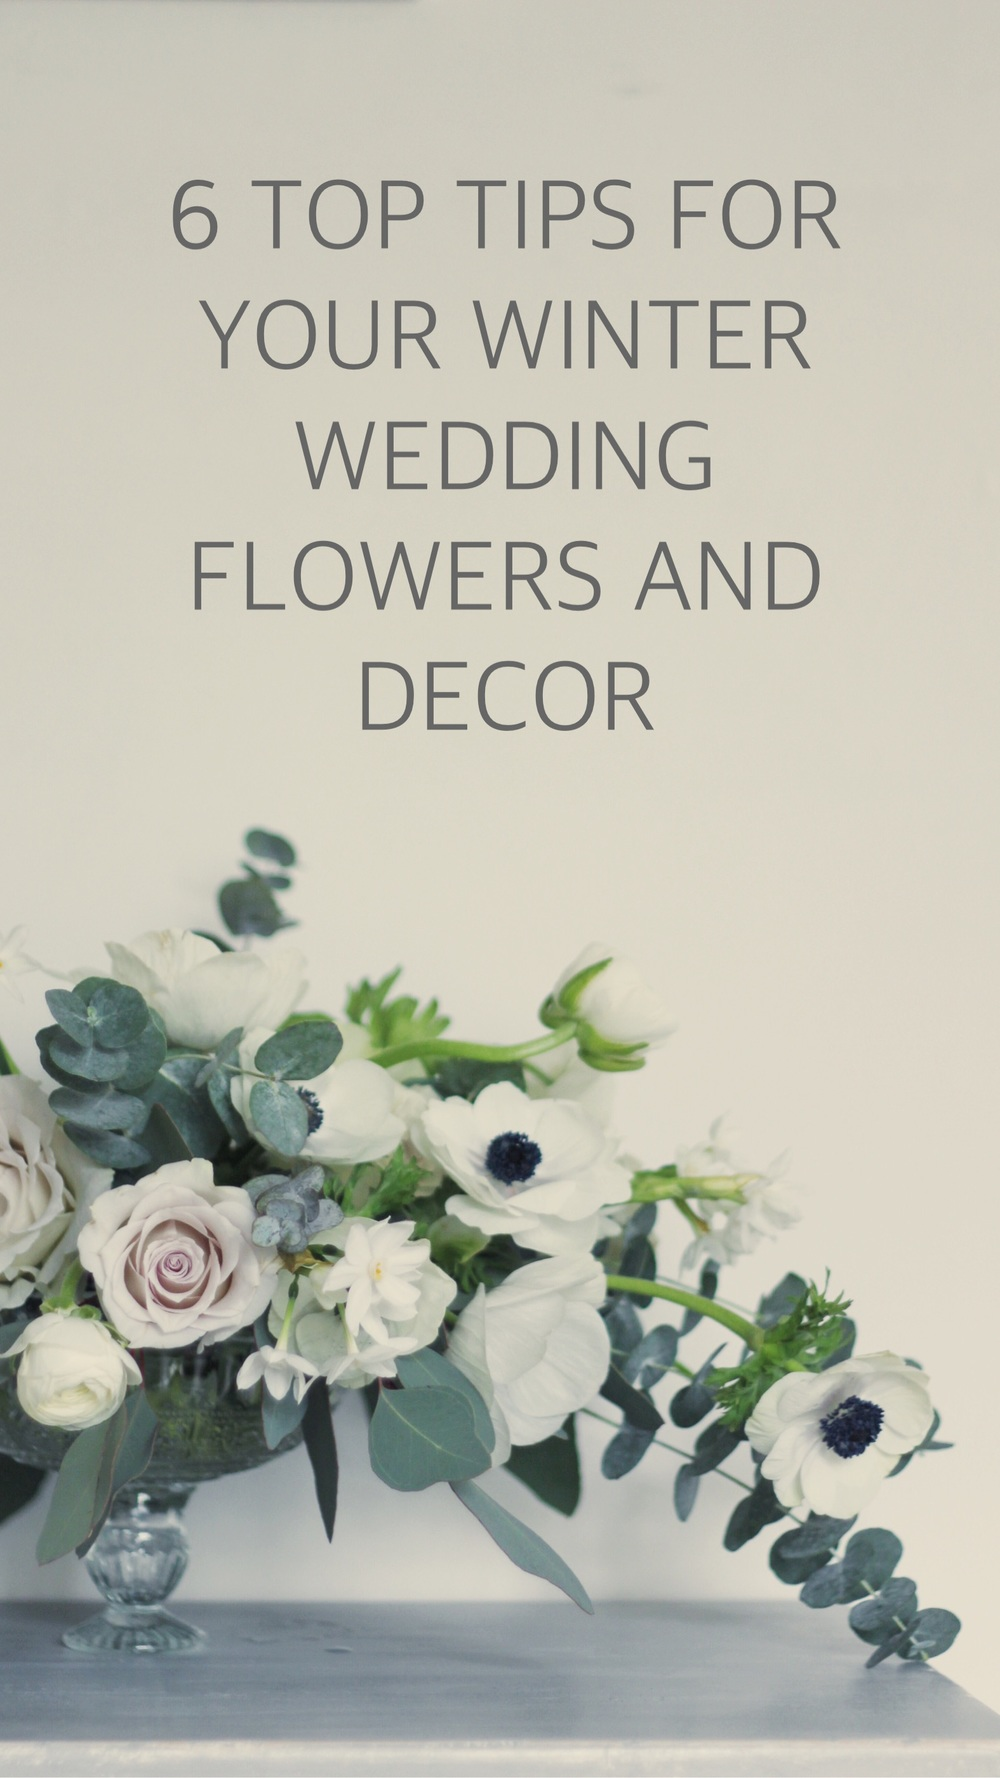 6 top tips for your winter wedding flowers and venue decor by Jennifer Pinder